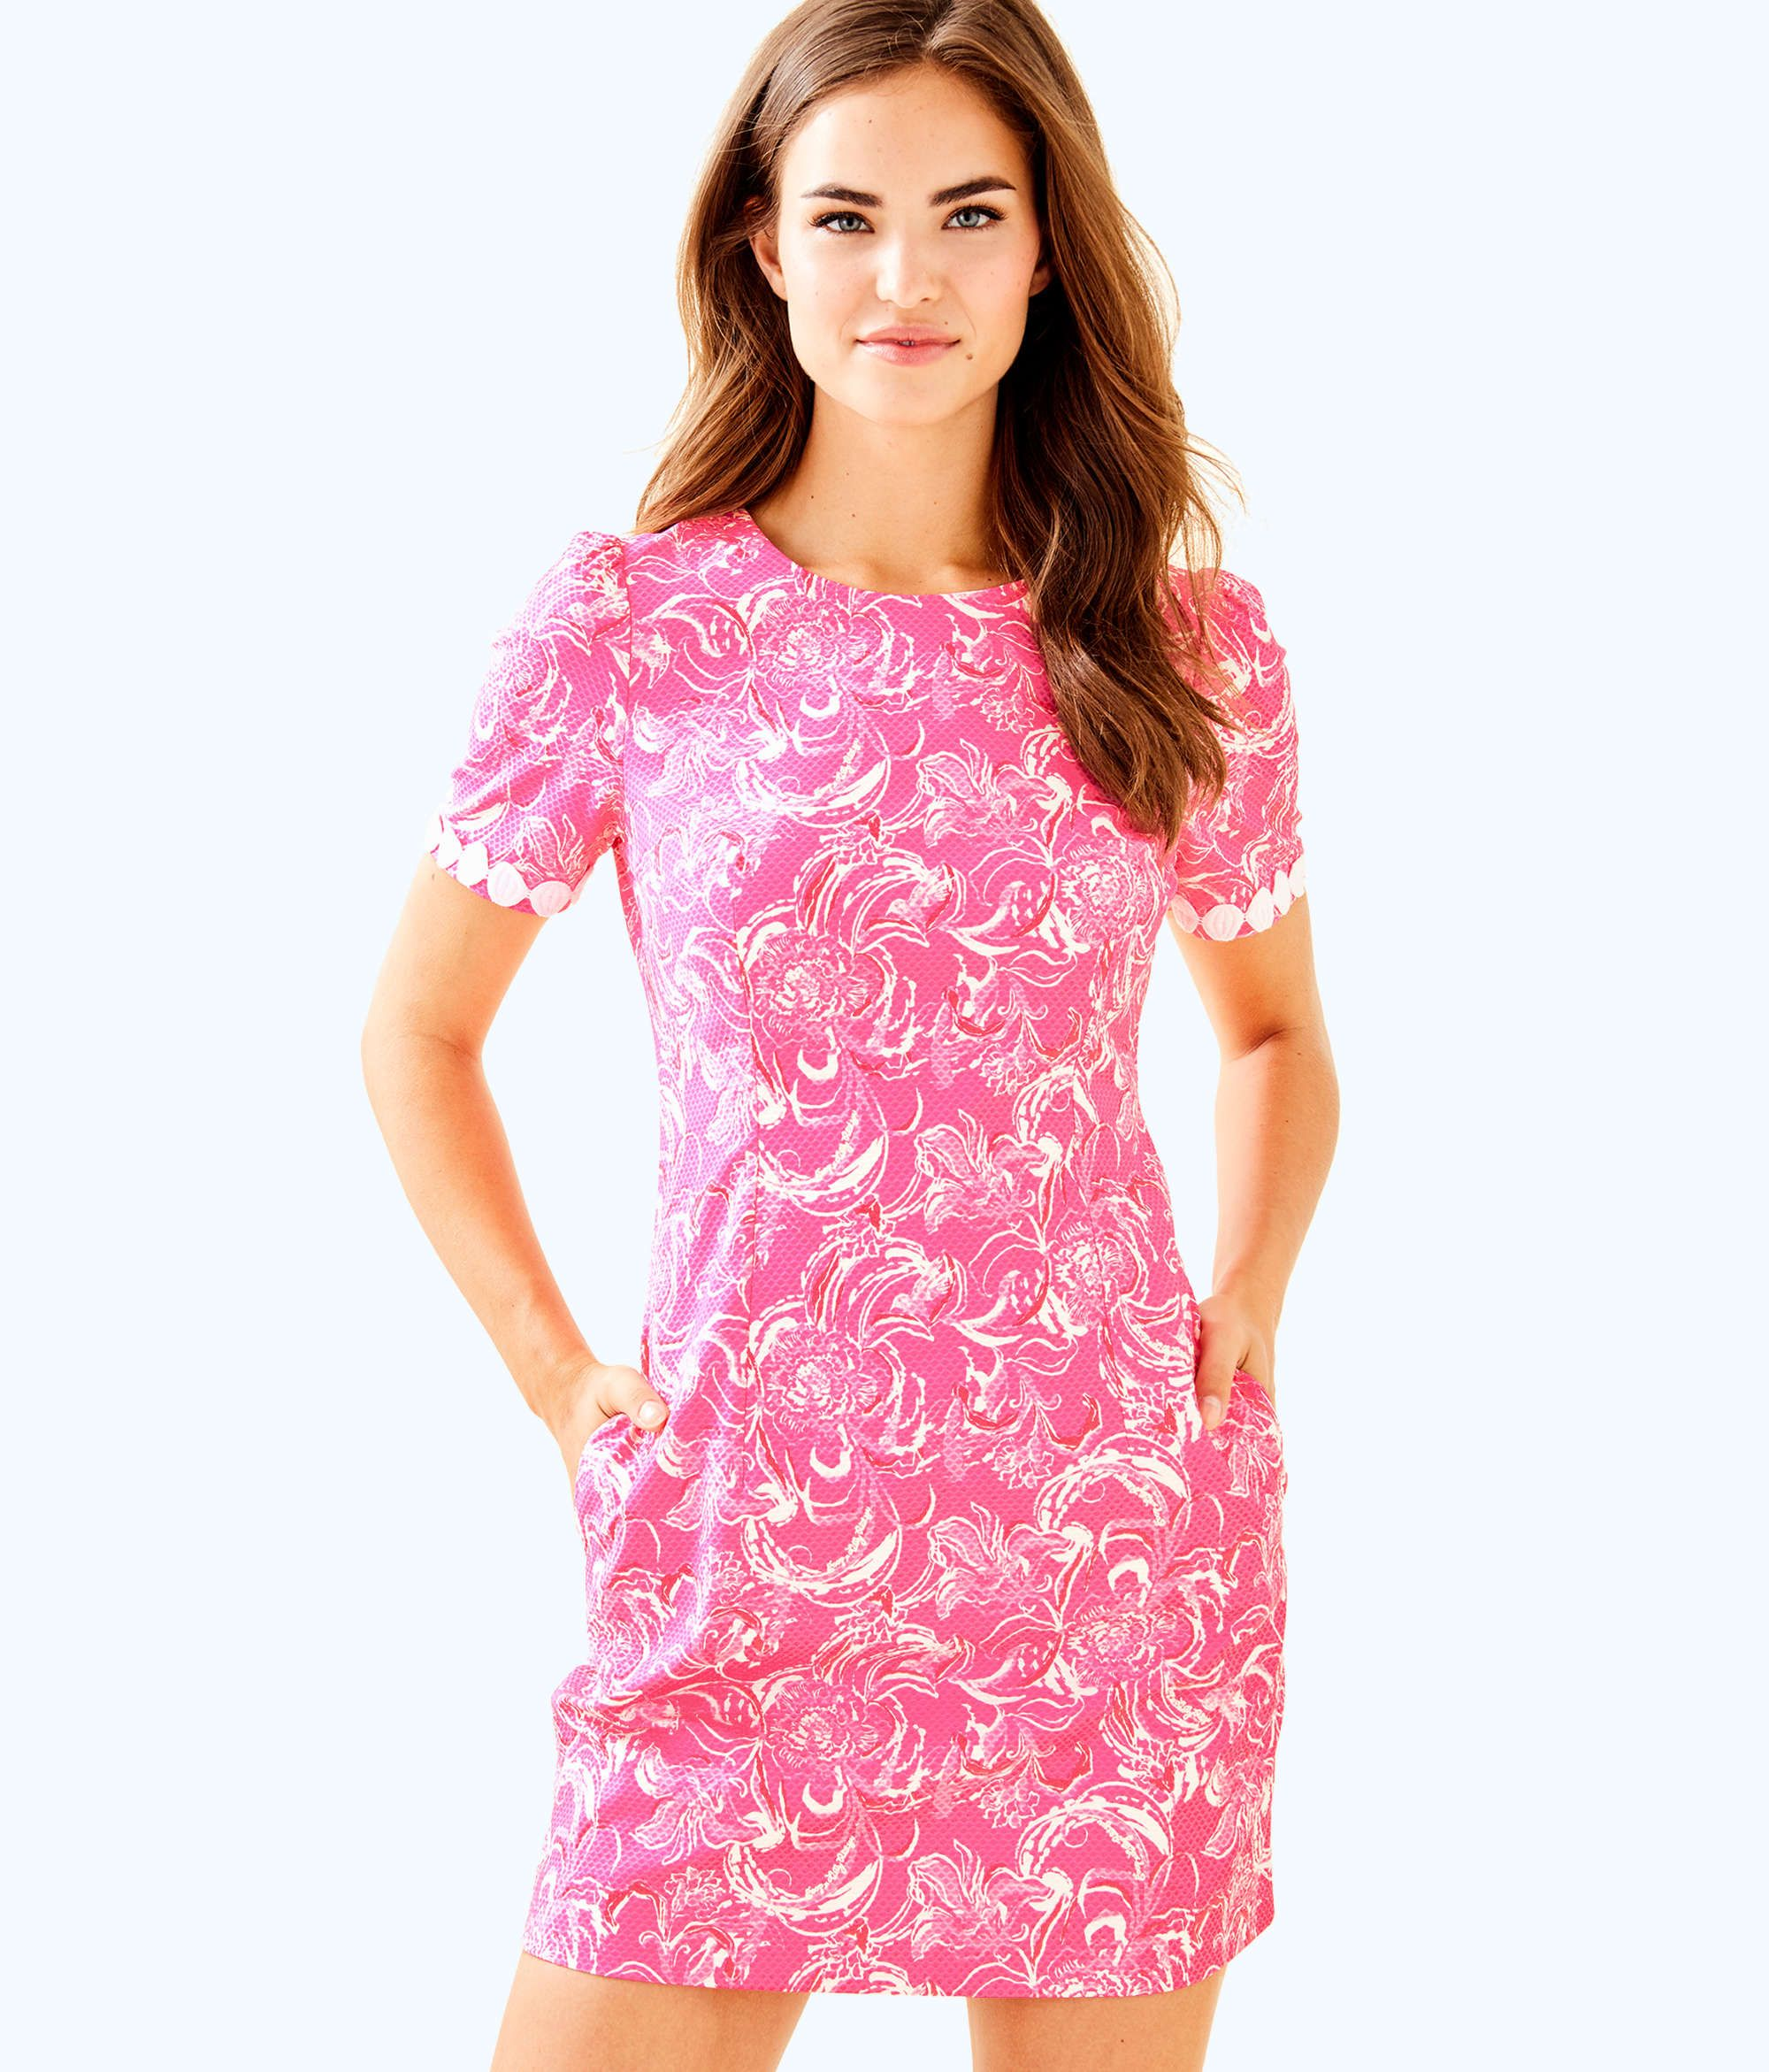 010147d0b97bf Lilly Pulitzer New Collection - Shop Lilly Pulitzer and Goop's New  Collaboration